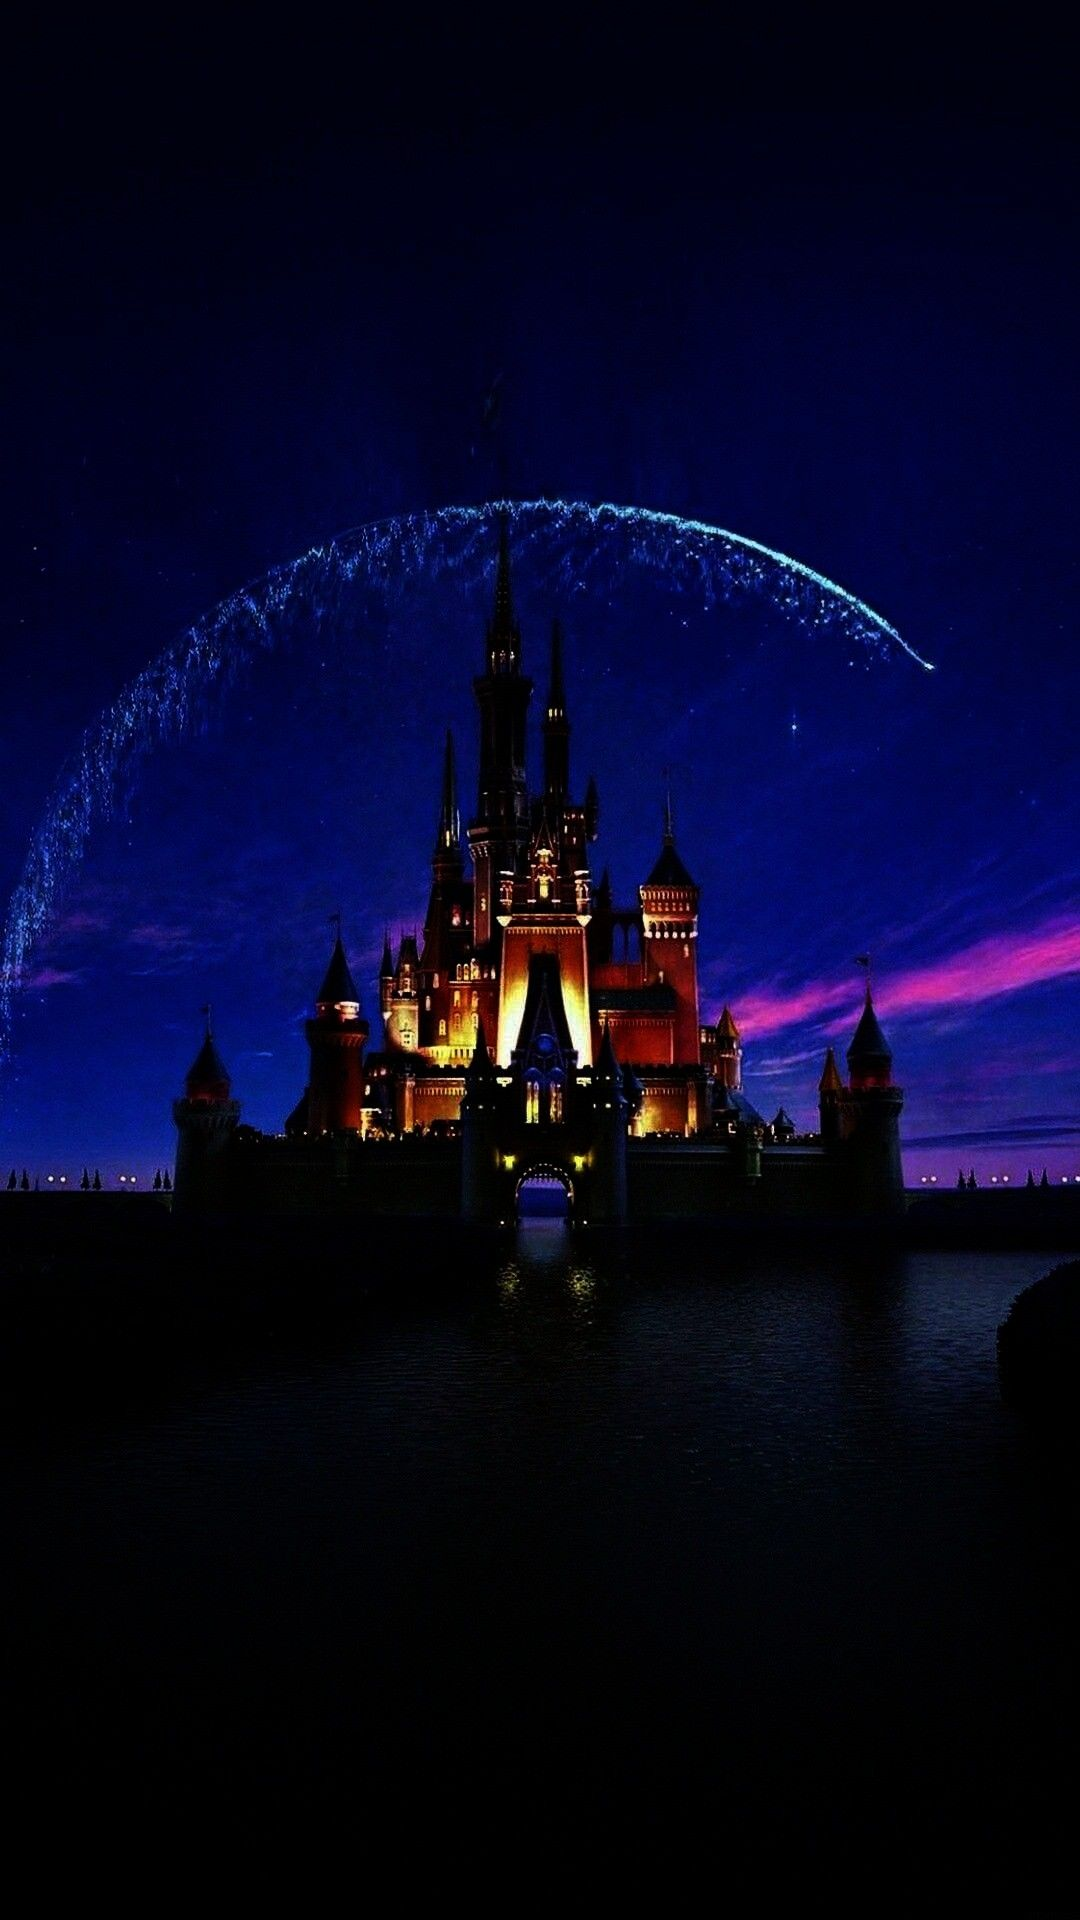 that thing was that goes above the palace Tinker Bell Or some sort of fai I always wondered what that thing was that goes above the palace Tinker Bell Or some sort of fai...